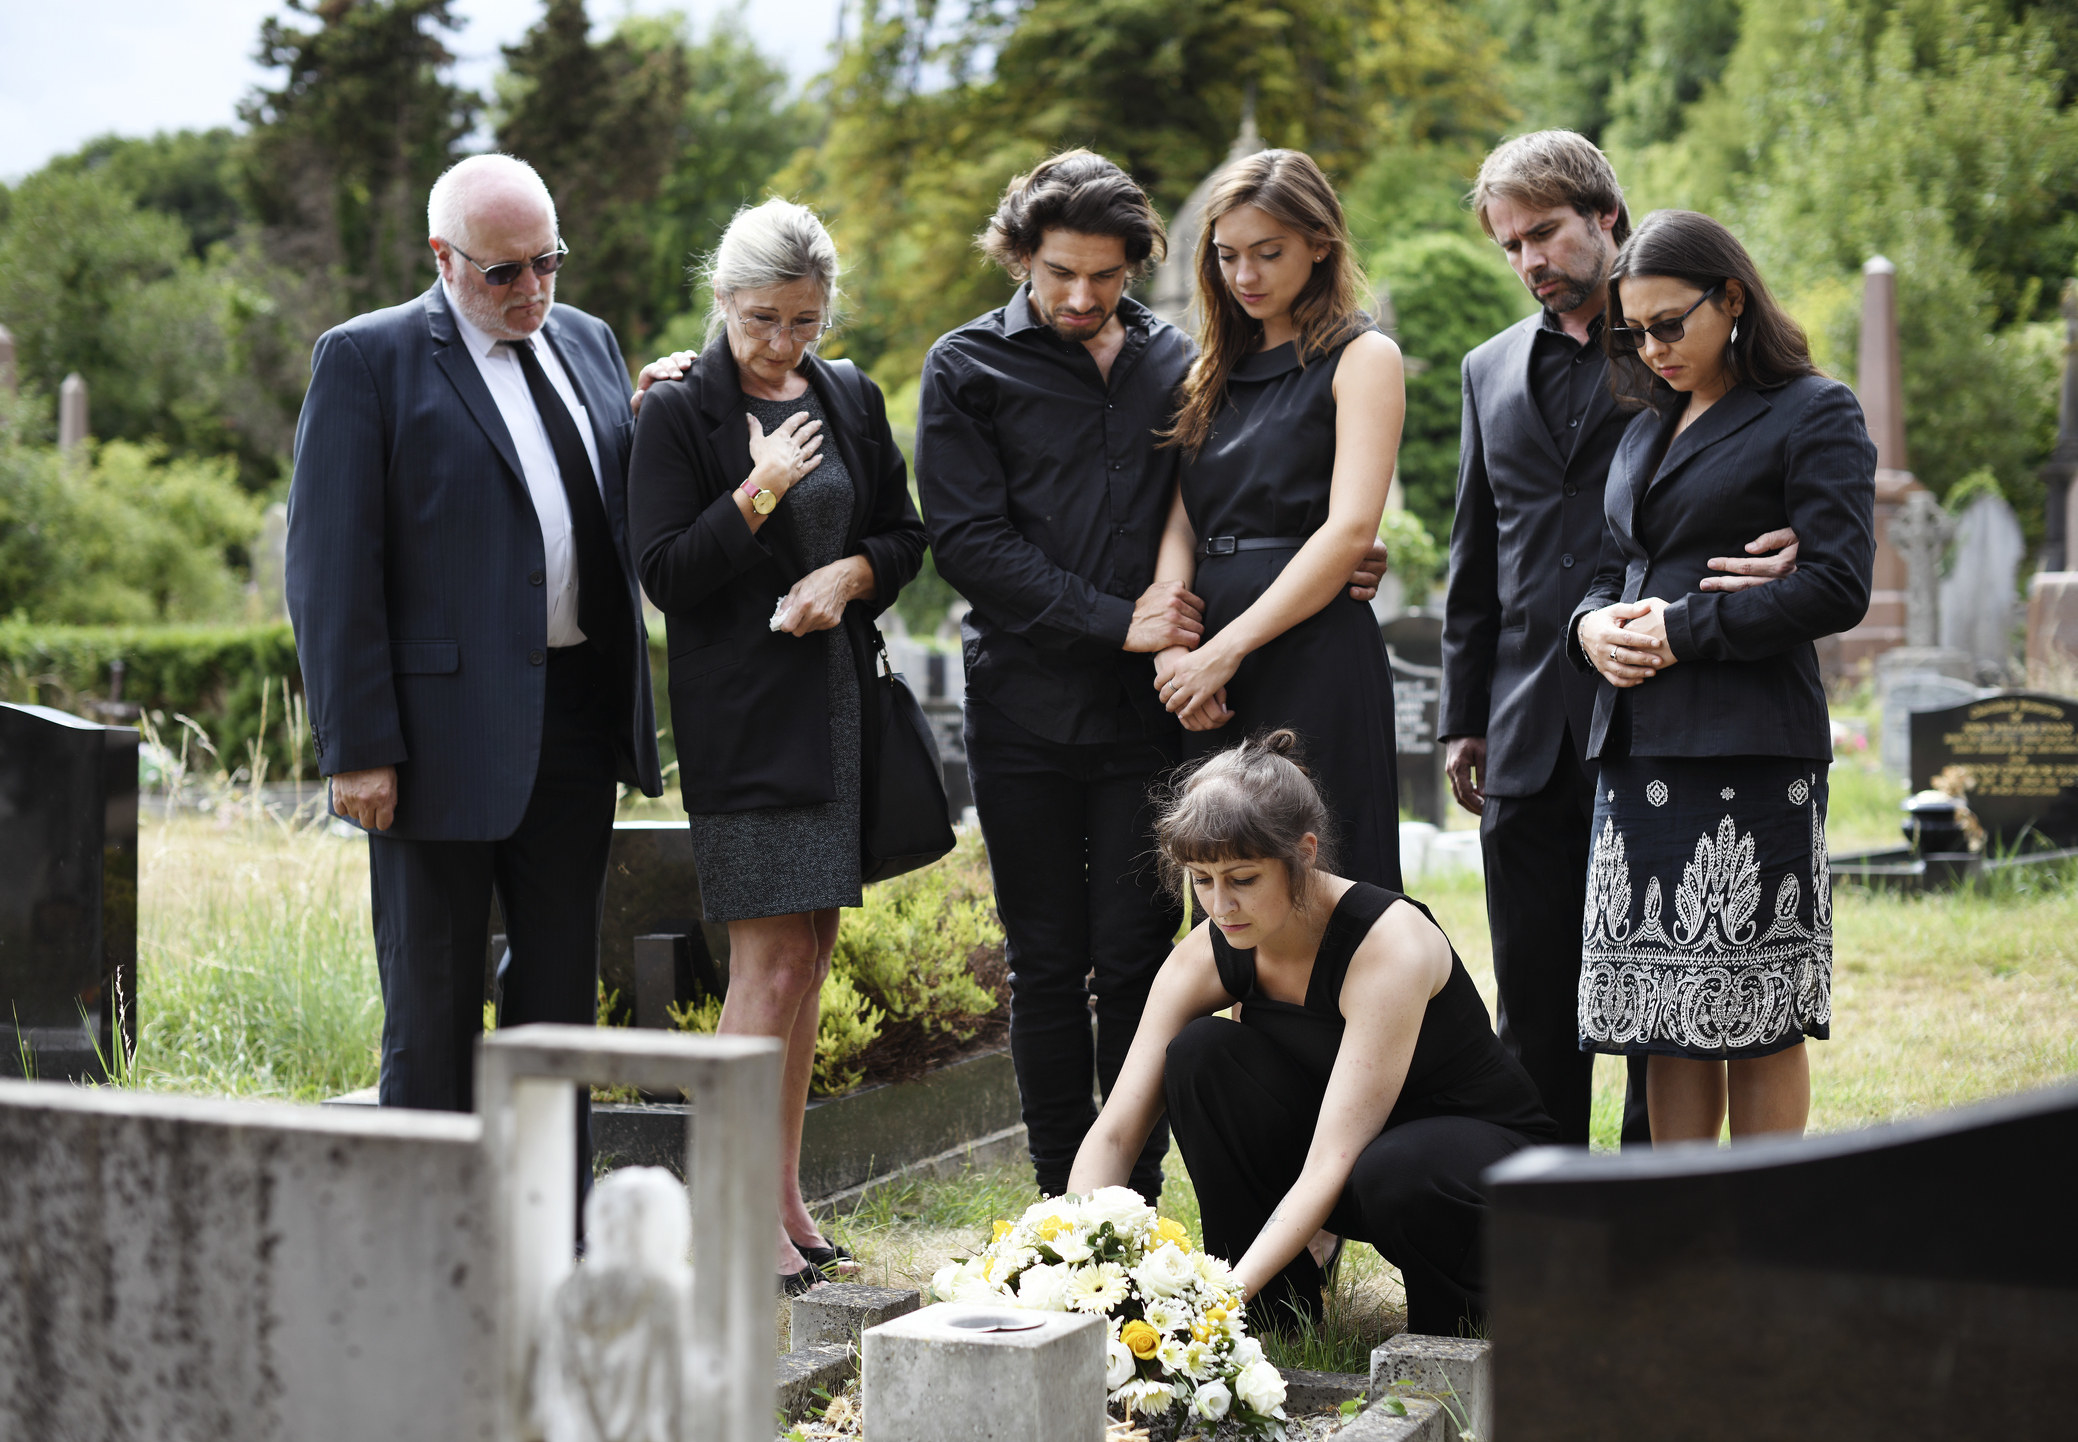 People laying flowers on a tombstone